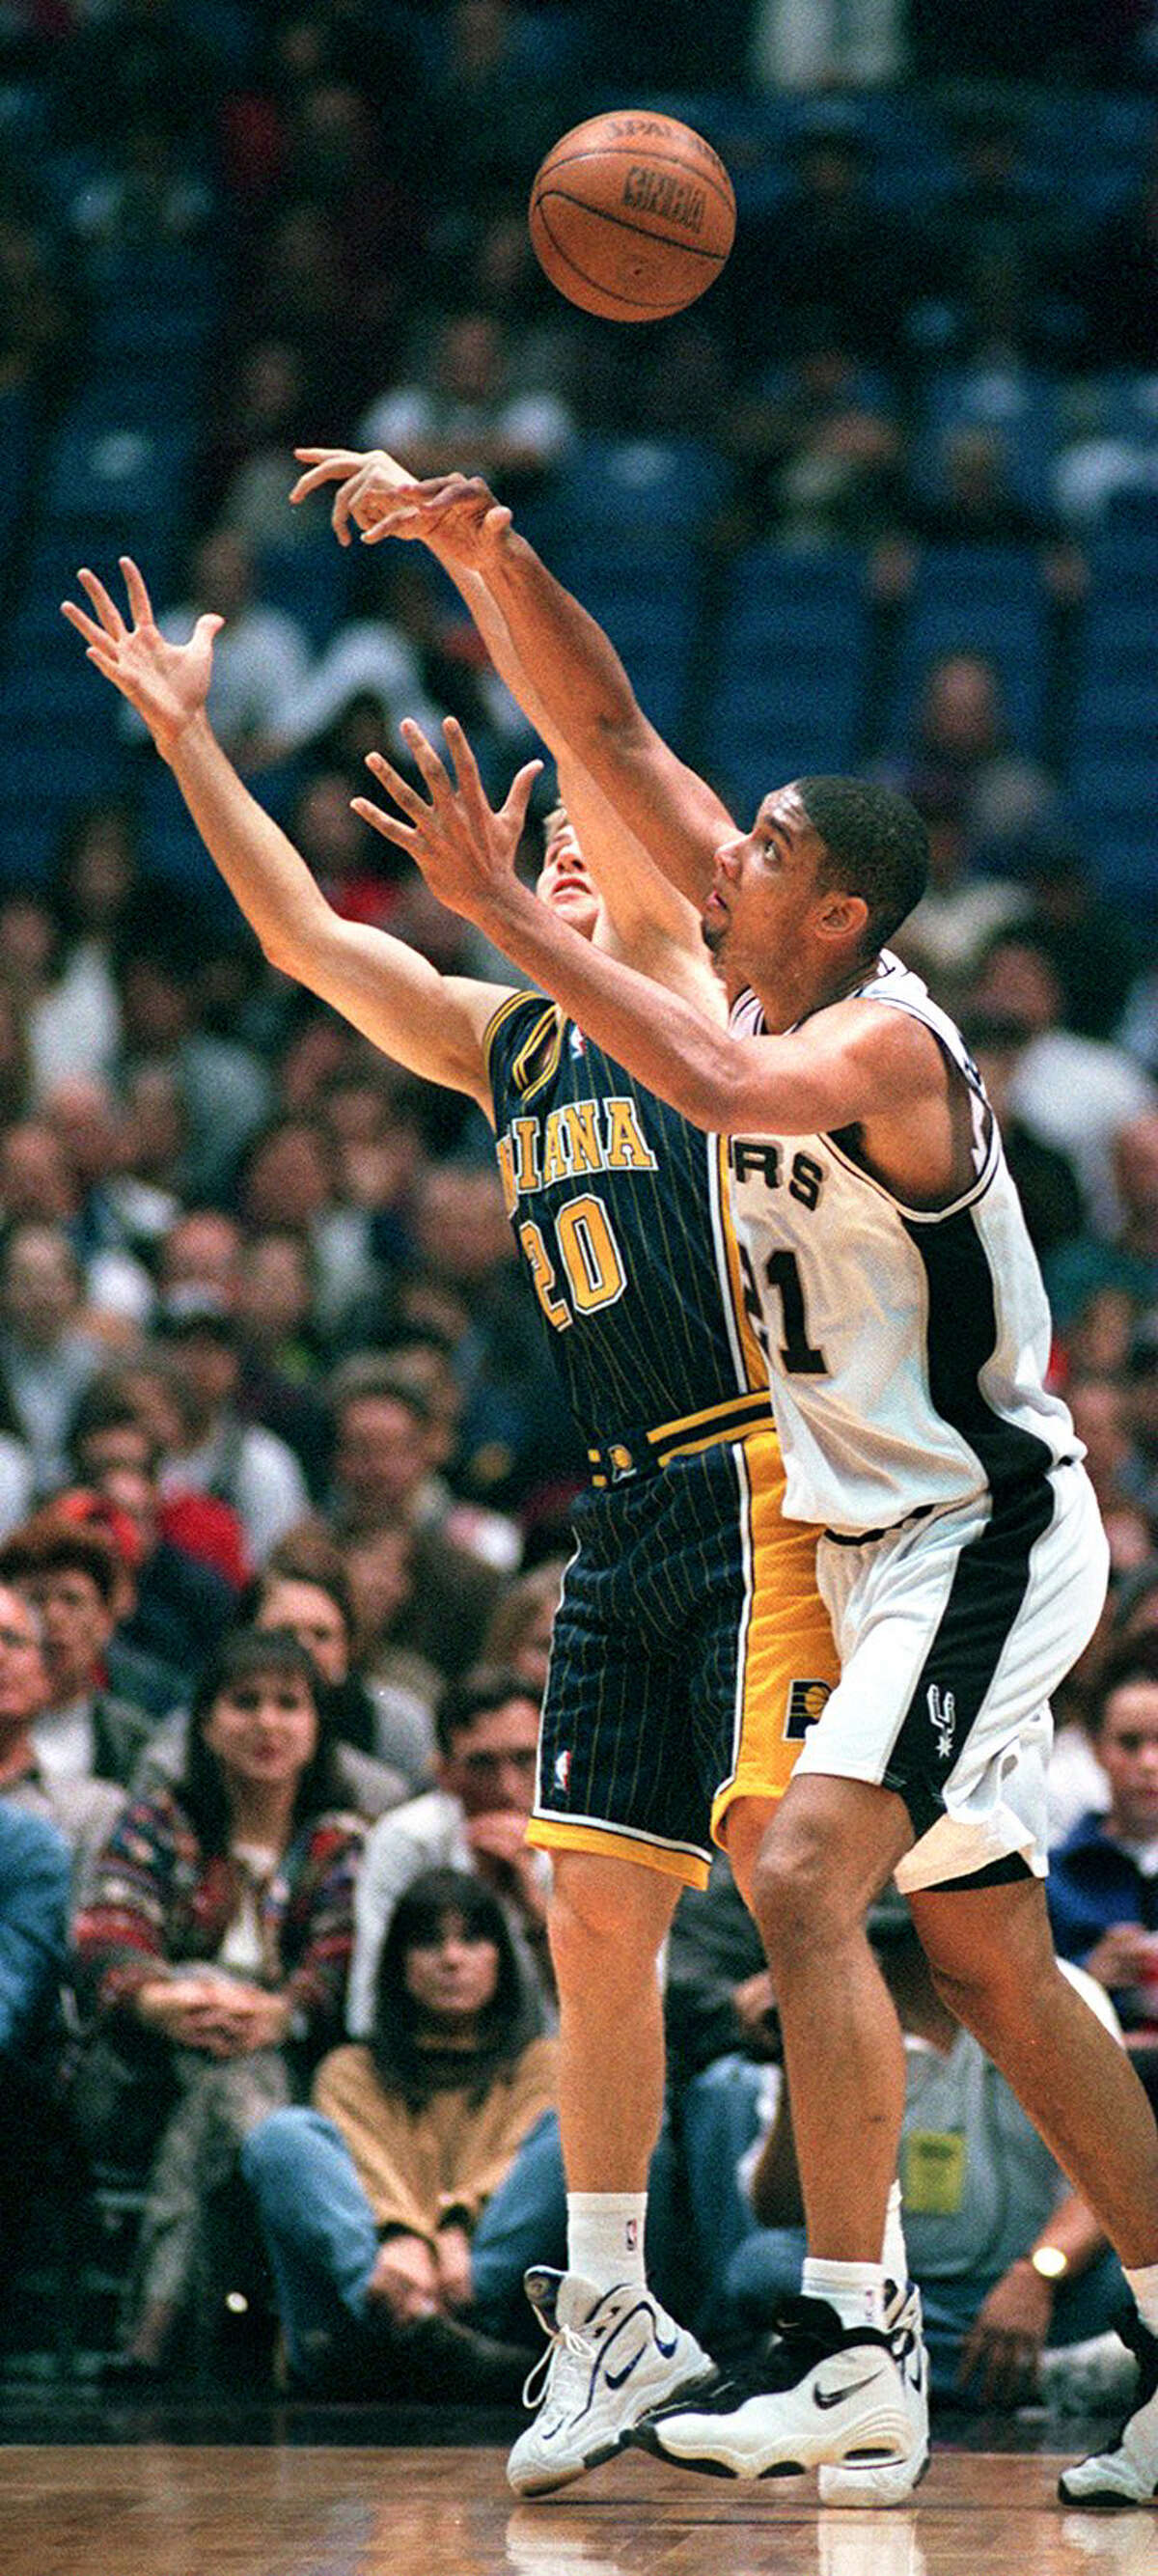 Indiana Pacer Fred Hoiberg(20) andSan Antonio Spur Tim Duncan(21) chase after a rebound during first half action Tuedsay December 23, 1997 at the Alamodome in San Antonio, Texas. AP PHOTO BY Edward Ornelas